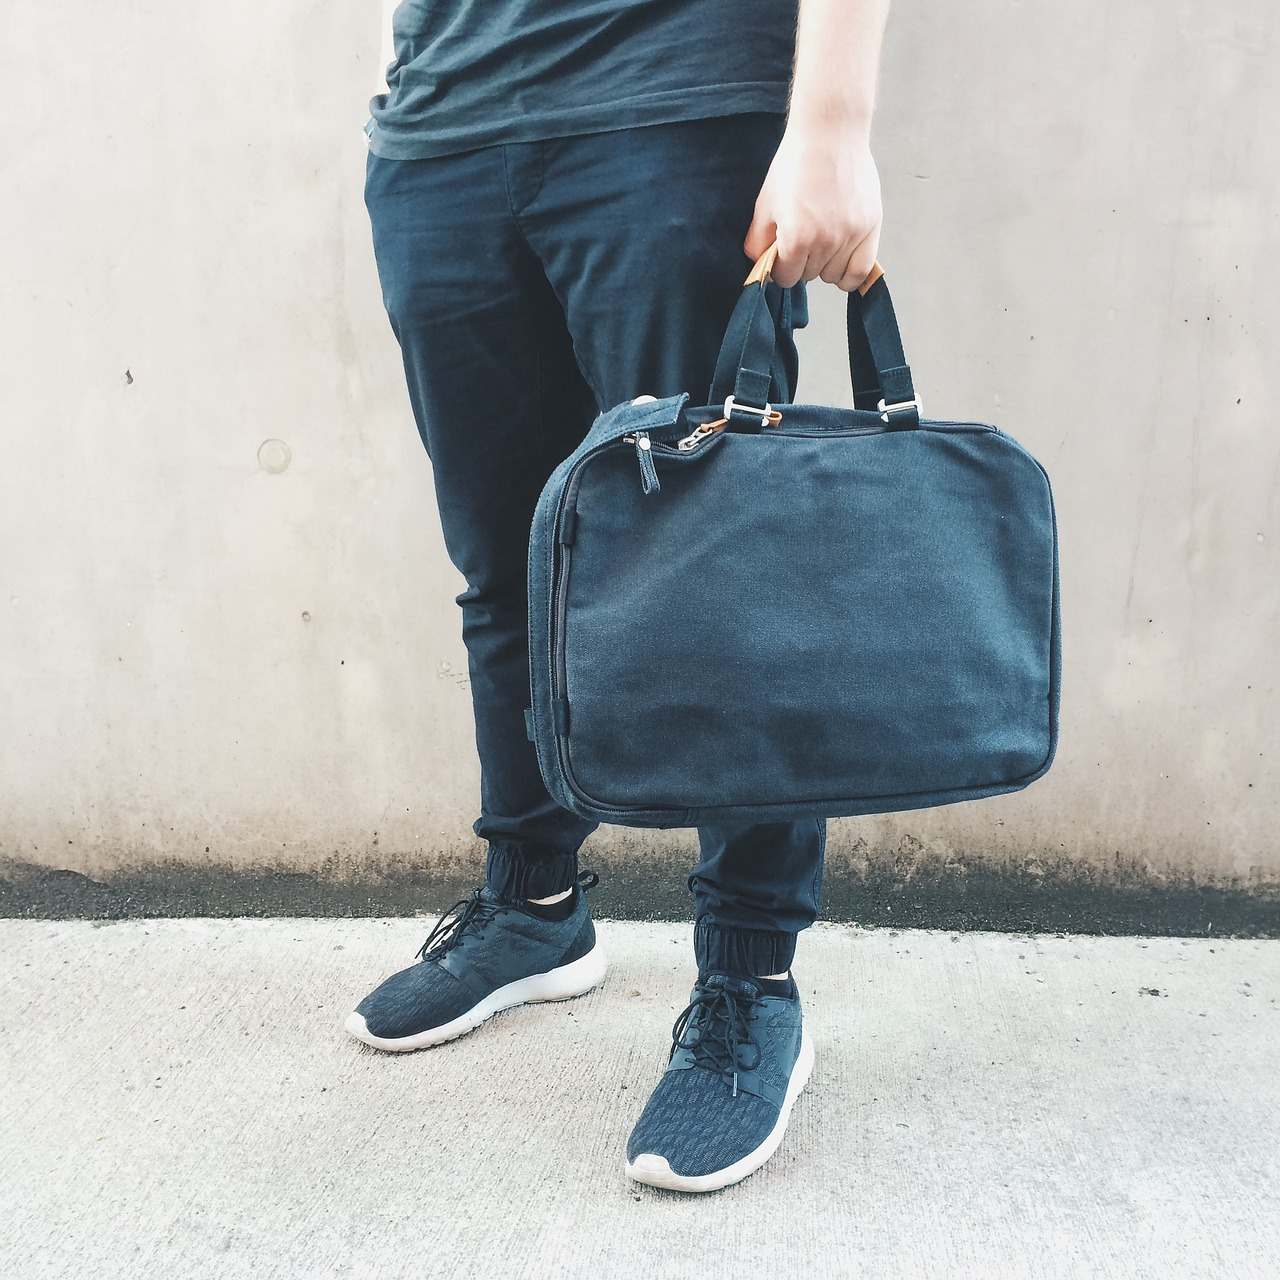 Packing guide tips for men travelling   Are you heading away on a lads holiday or away with your partner and not sure what to pack? Check out our handy guide for travel tips and packing advice   Elle Blonde Luxury Lifestyle Destination Blog